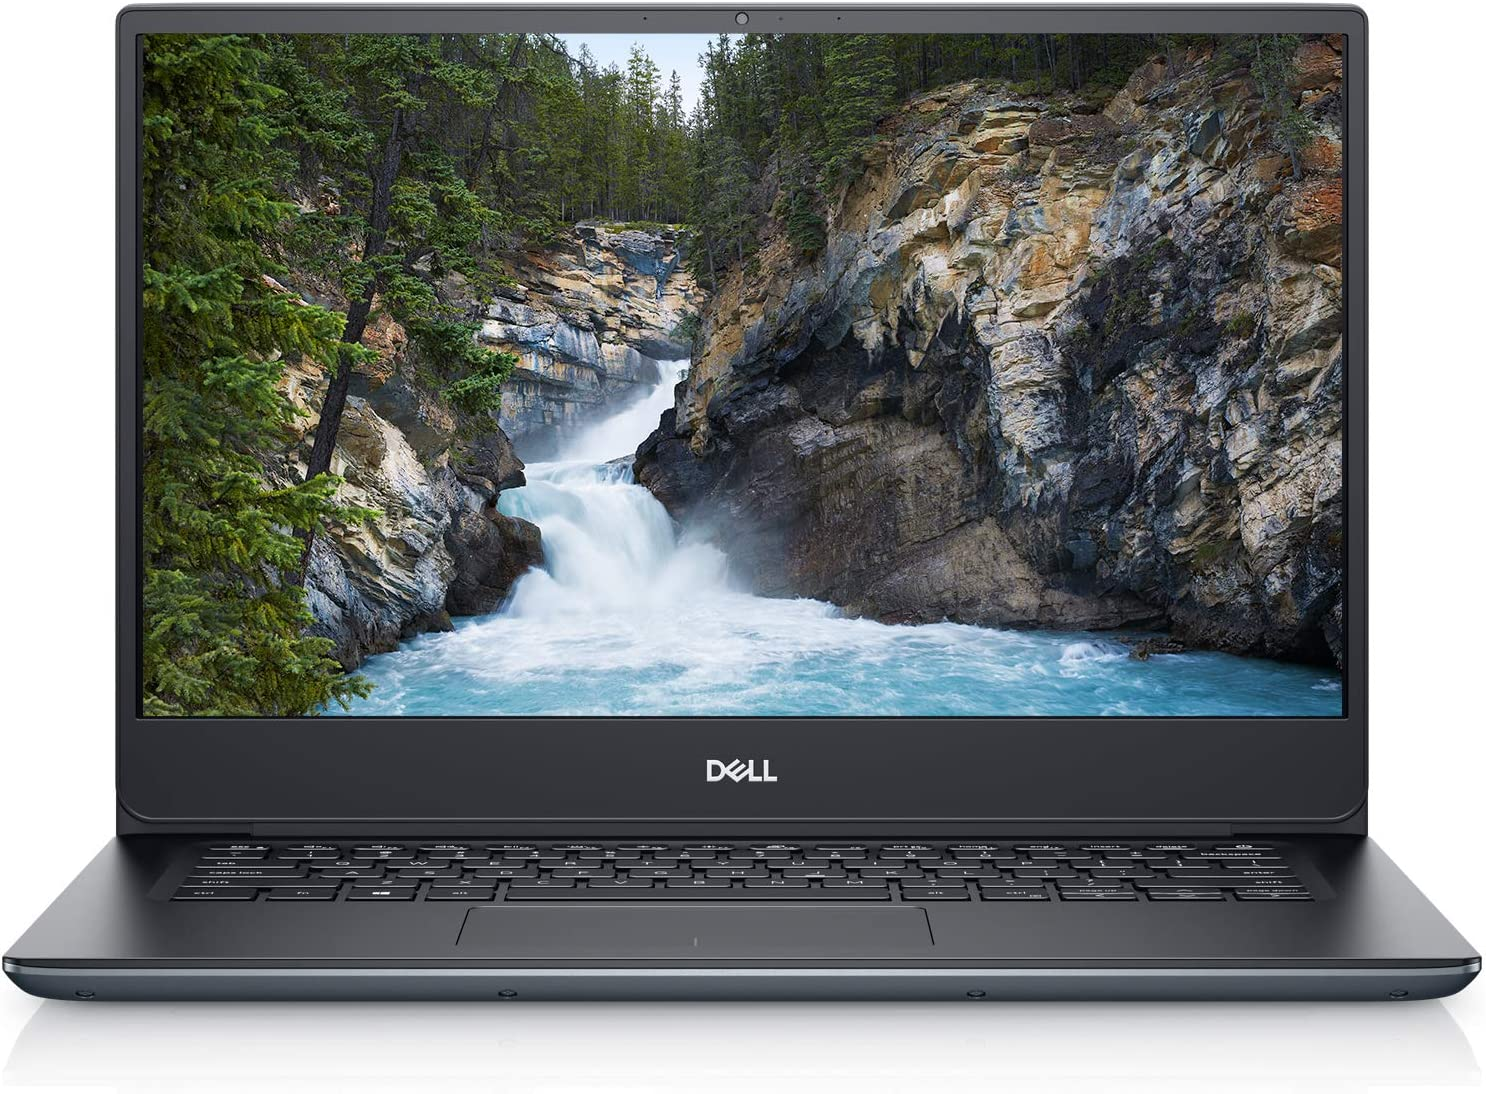 Dell Vostro 14 5490, 10th Generation Intel Core i7-10510U, 14.0-Inch FHD (1920 X 1080), 16GB DDR4 2666MHz, 512 SSD, NVIDIA GeForce MX250 2GB GDDR5, v5490-7326GRY-PUS